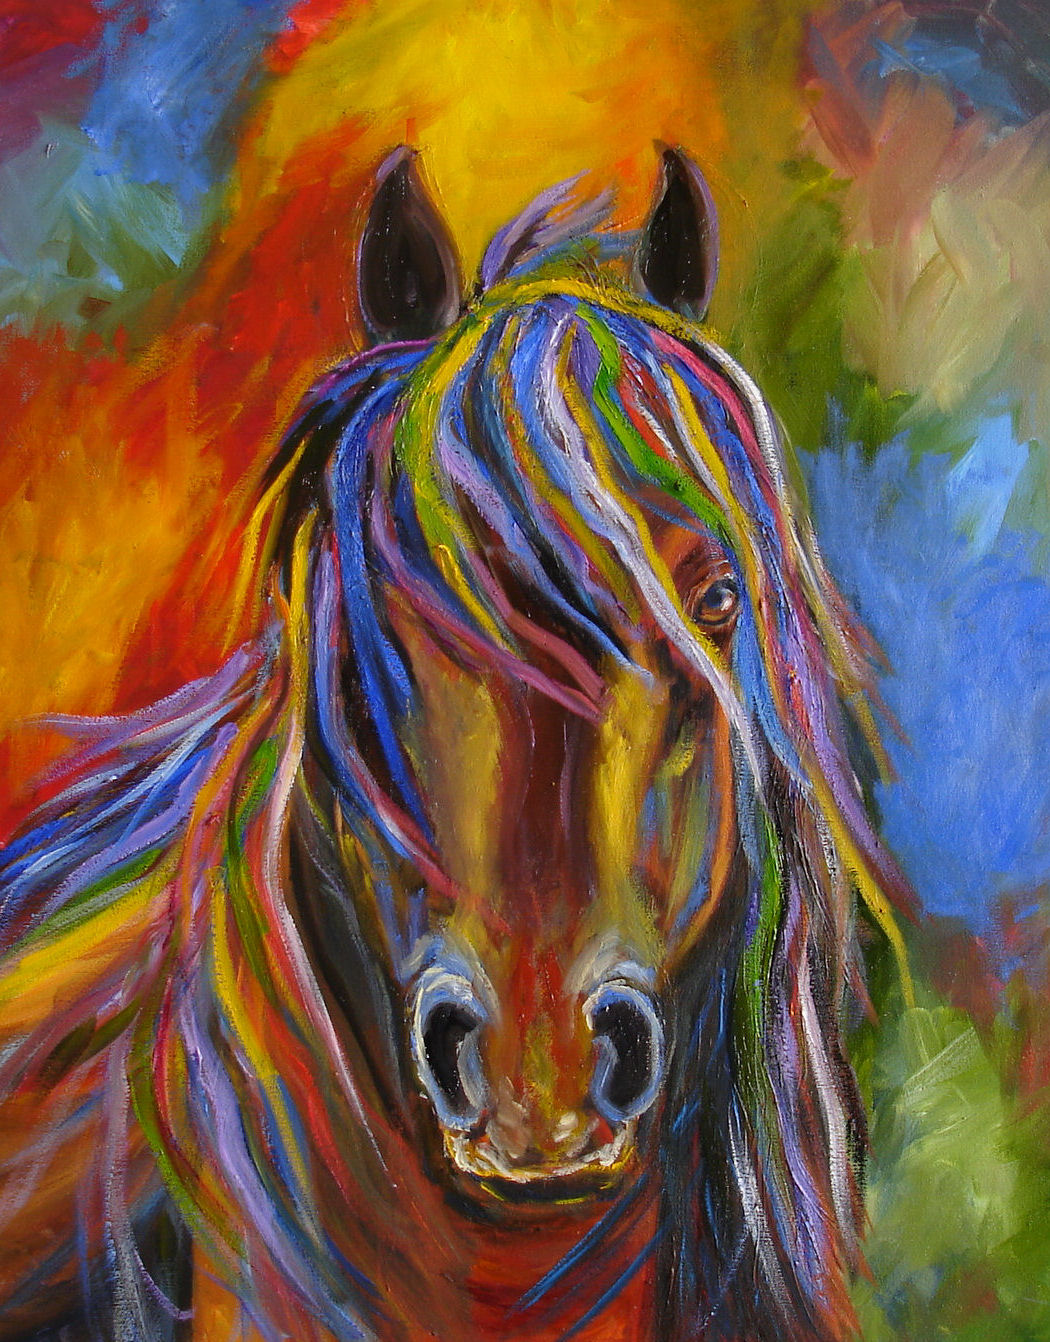 Abstract Horse Paintings | Car Interior Design